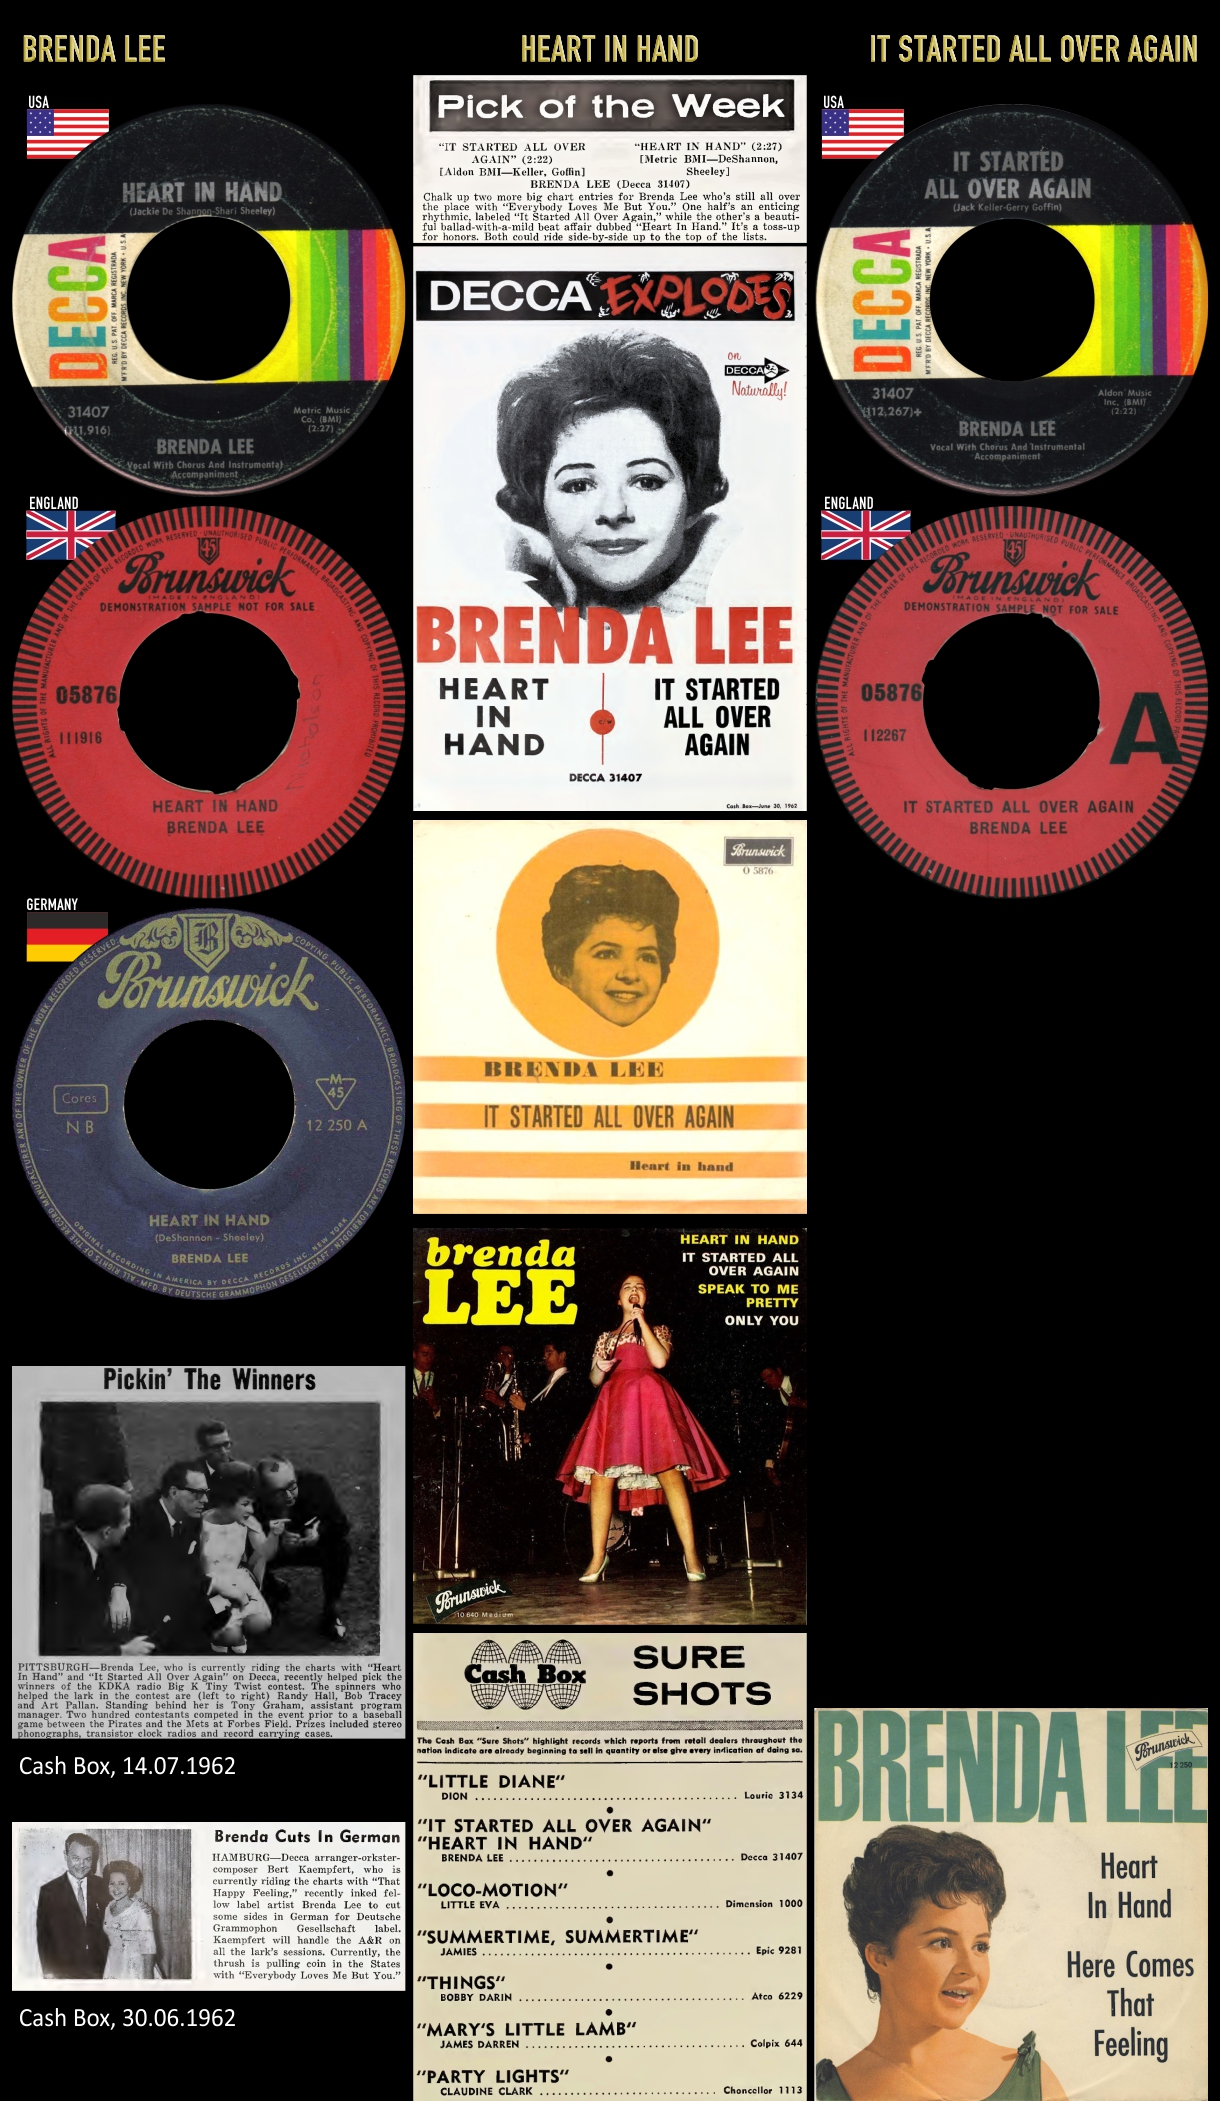 620630_Brenda Lee_It Started All Over Again_Heart In Hand